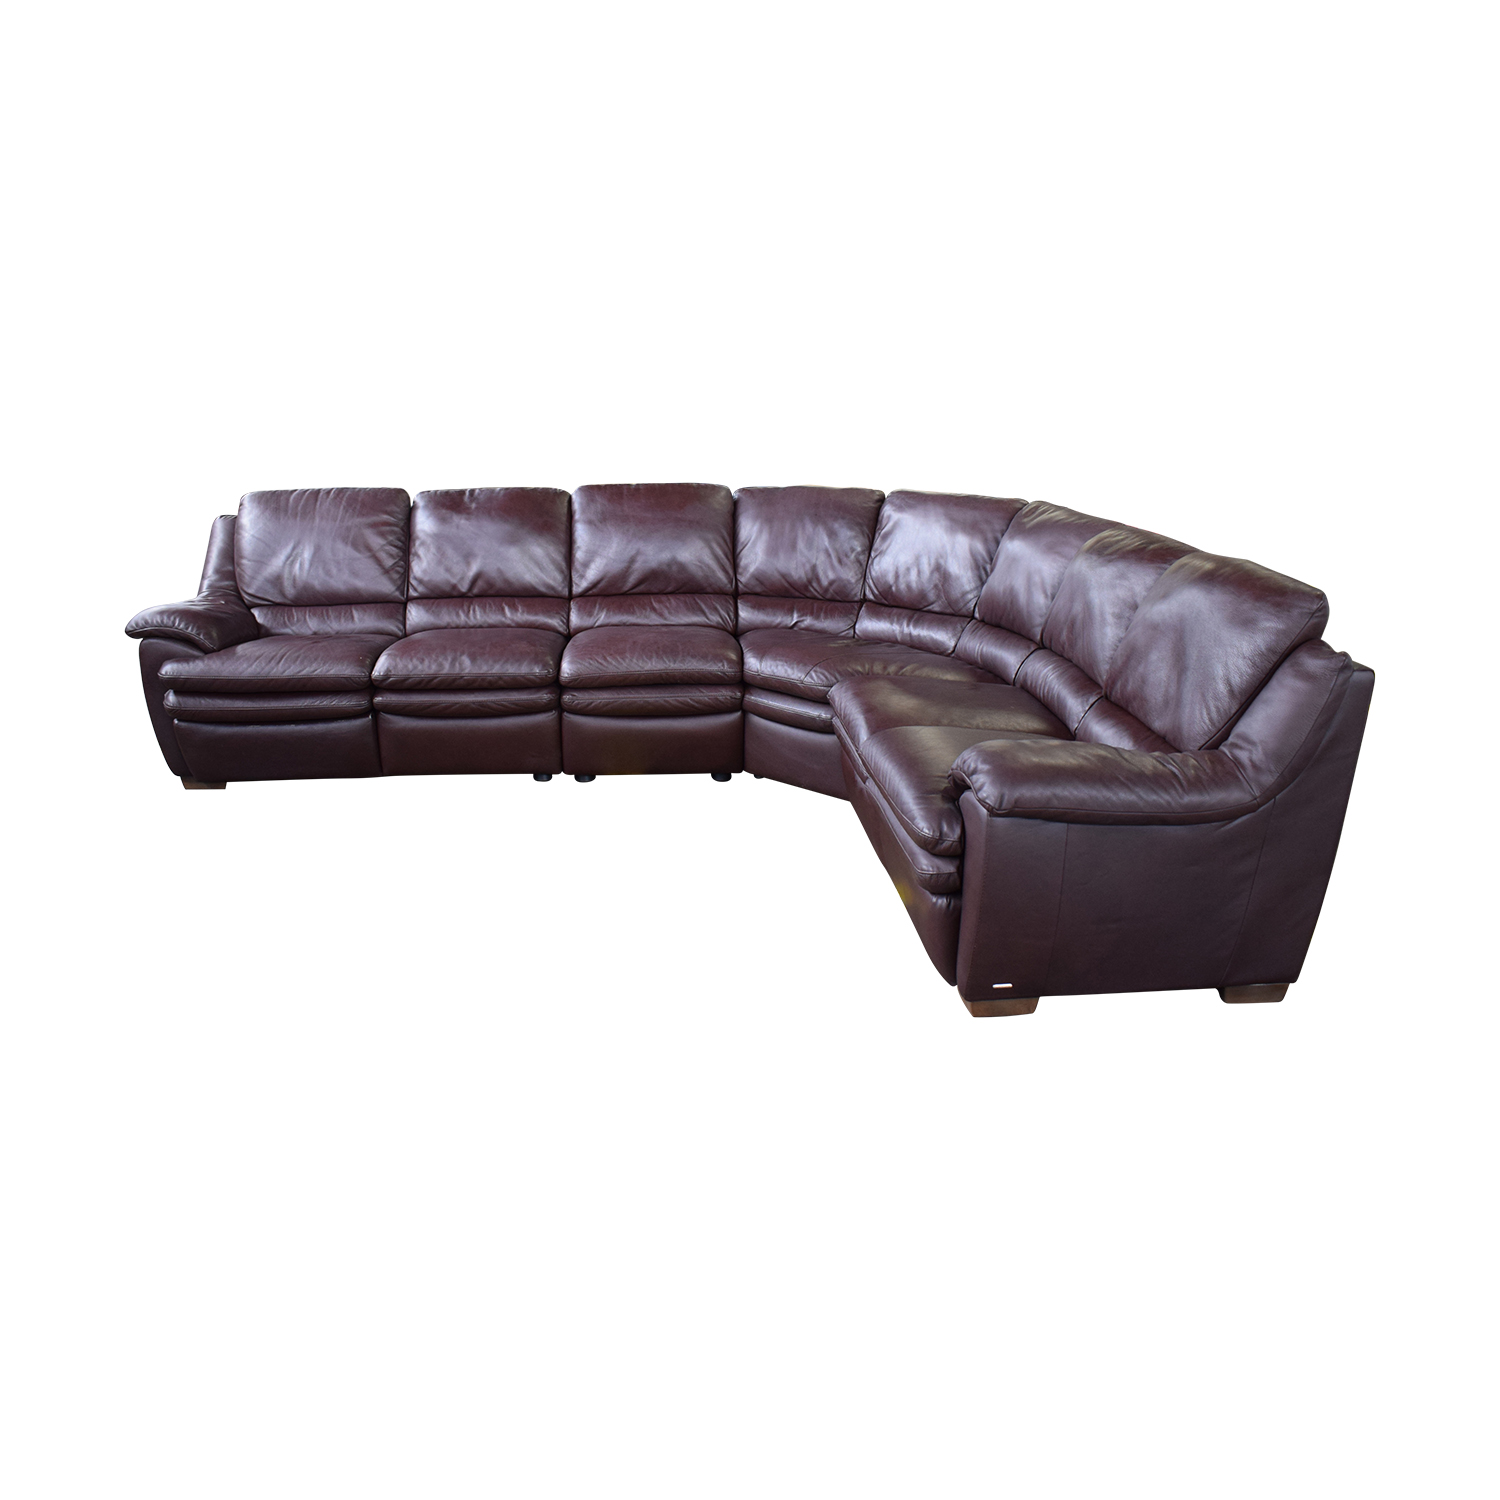 75% OFF - Natuzzi Natuzzi Reclining Sectional Sofa / Sofas